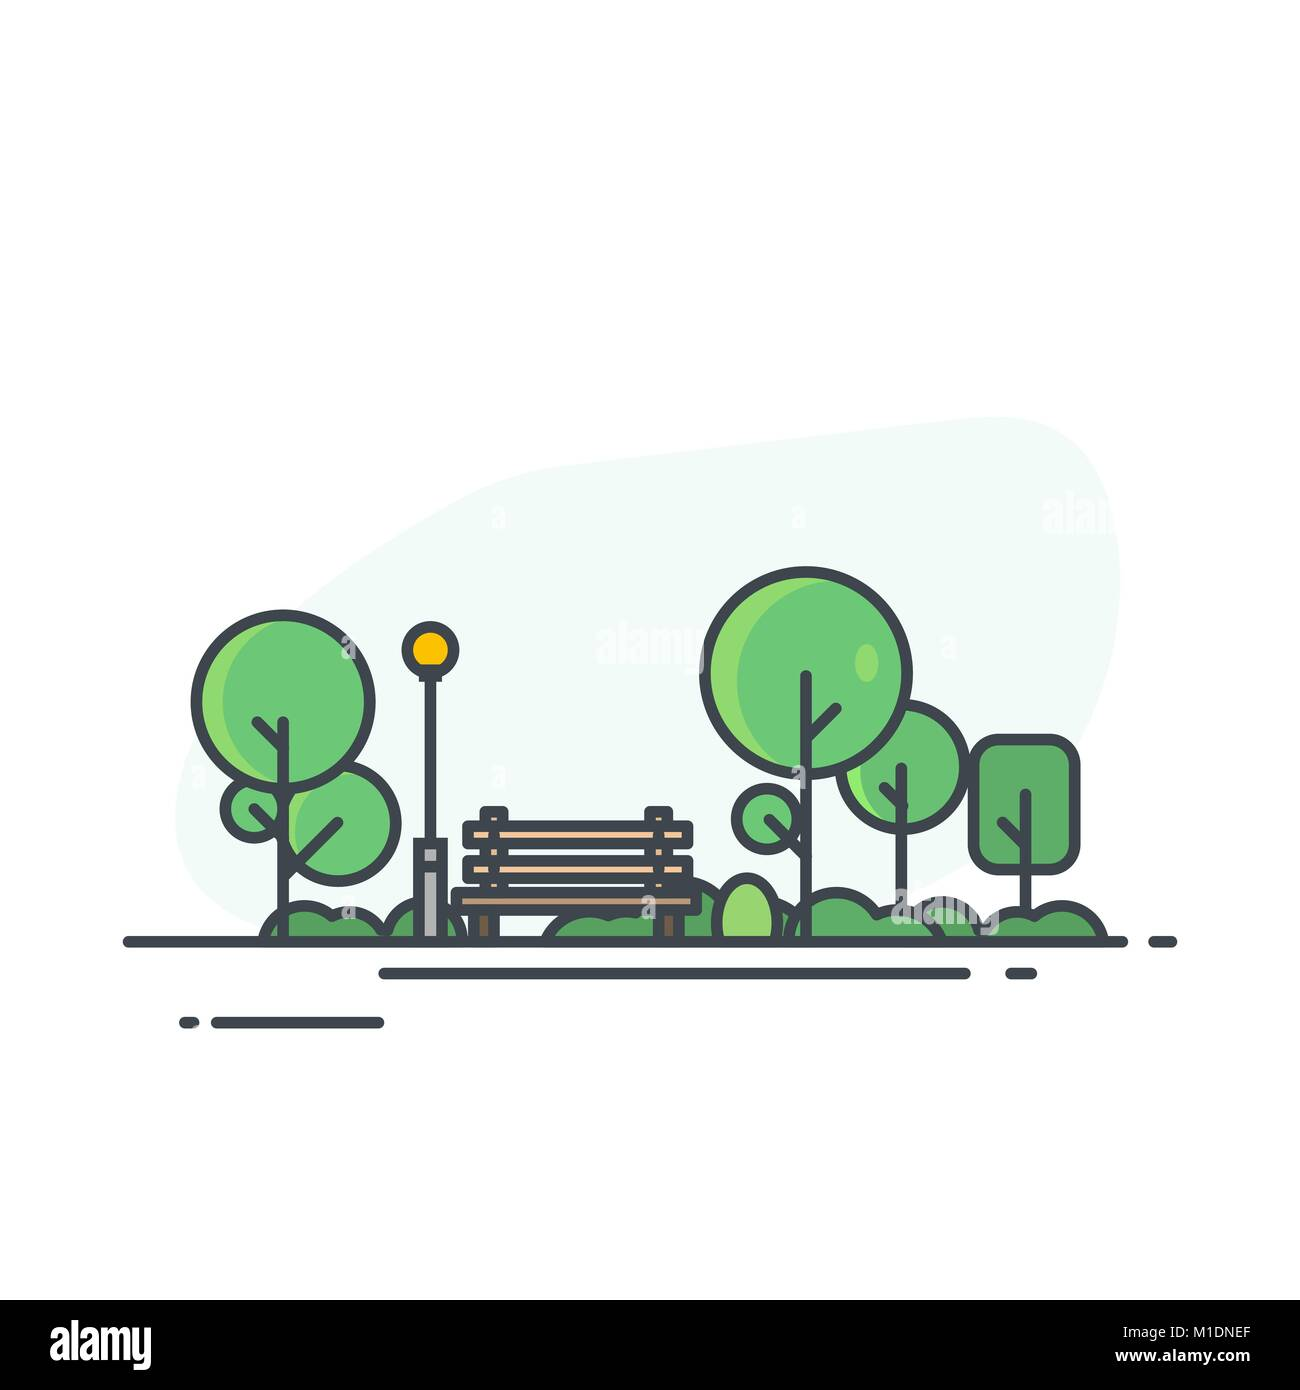 City park with bench - Stock Vector